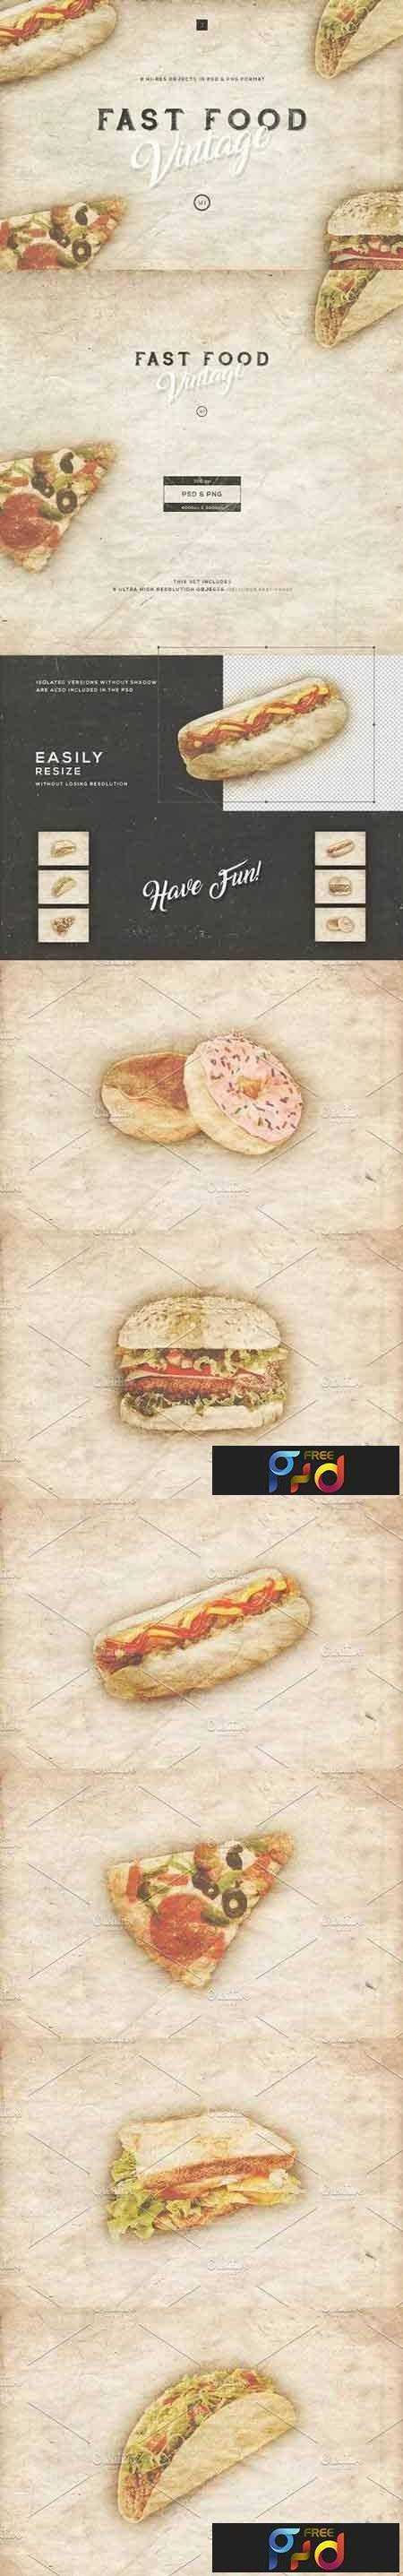 FreePsdVn.com_1704279_TEMPLATE_fast_food_vintage_set_1317082